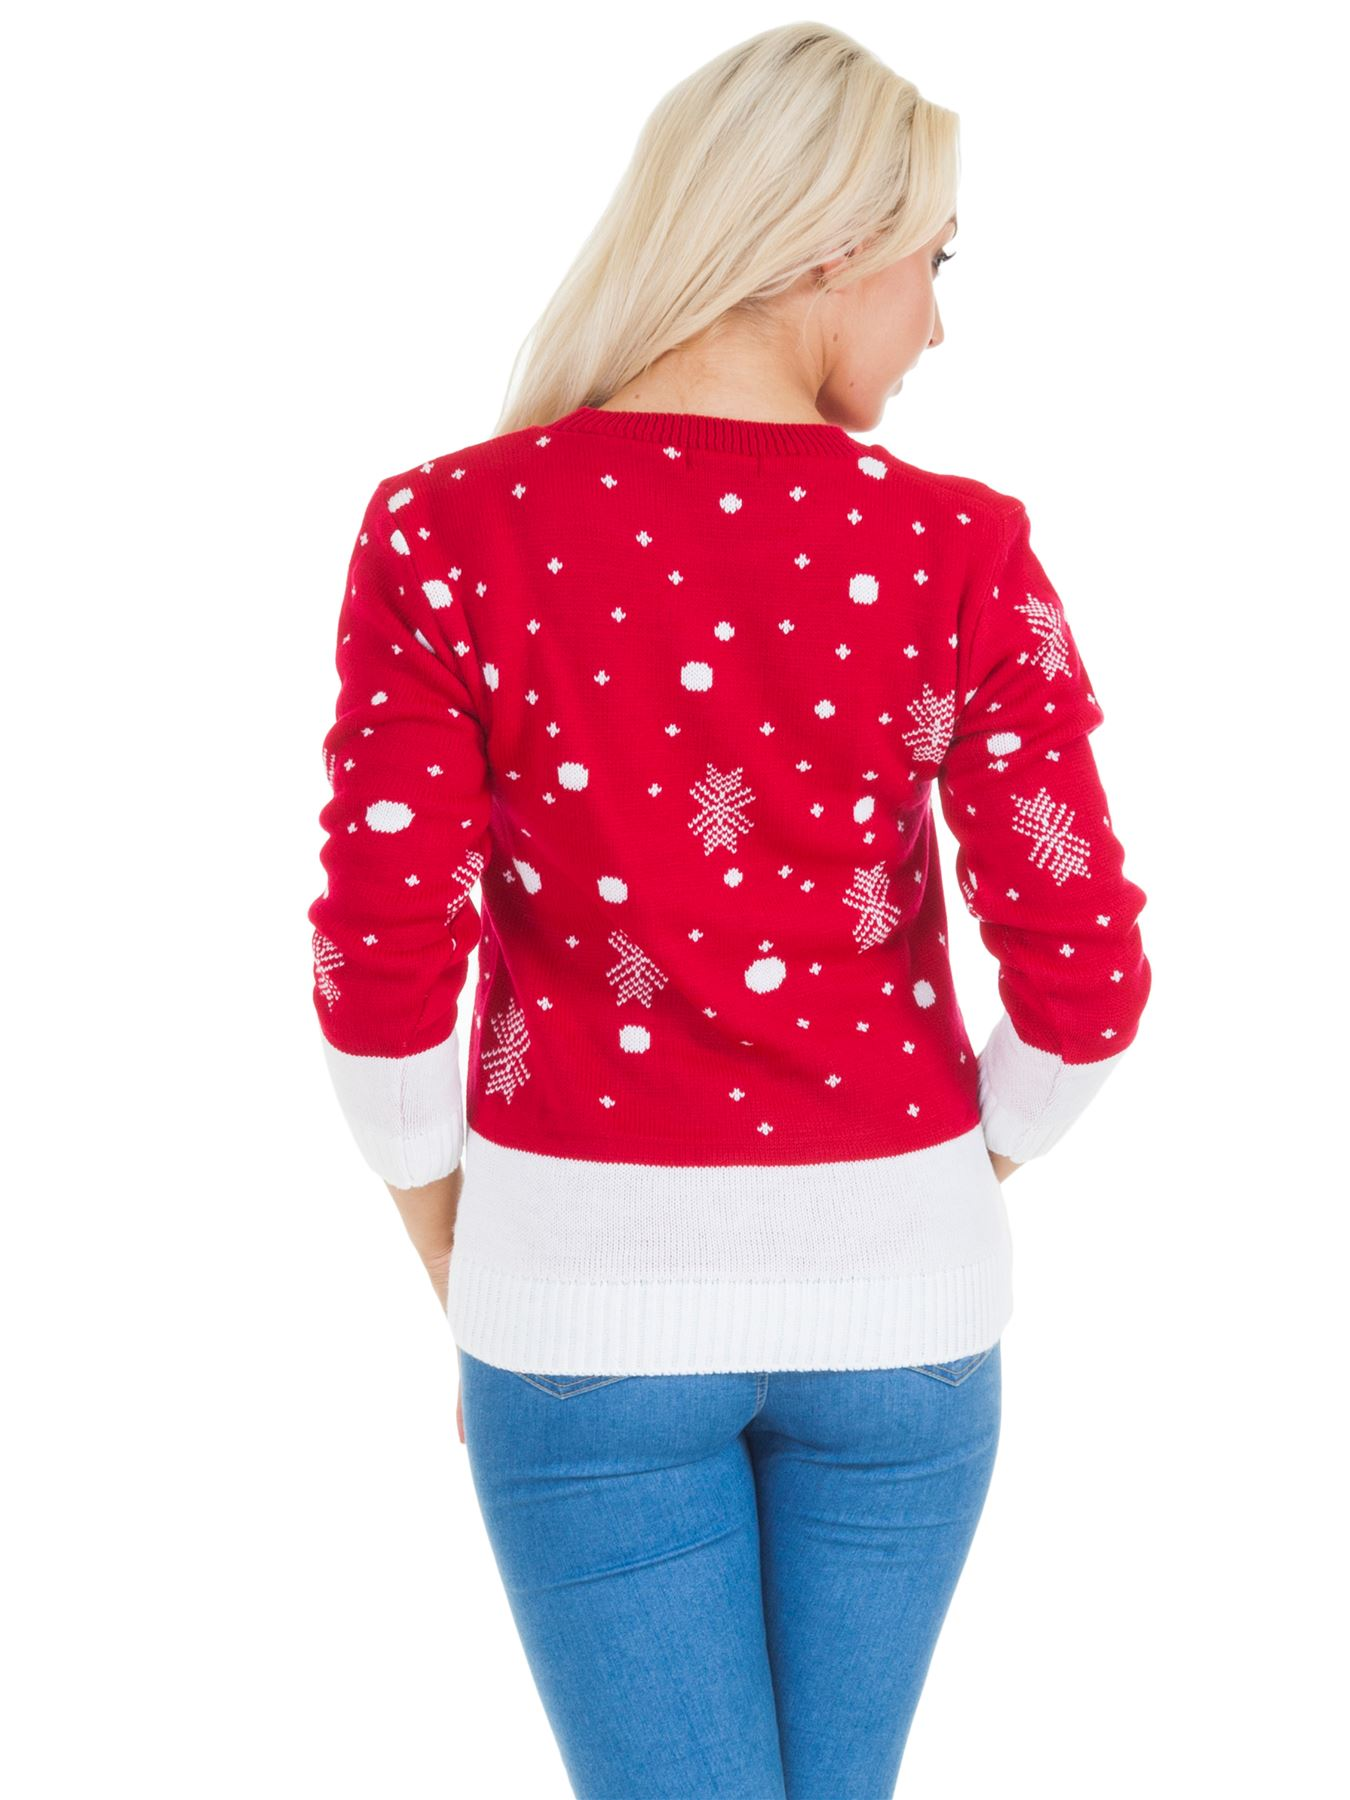 4fda50e25a7 Women Christmas Jumper Ladies Knitted Sweater Smiling Rudolph ...